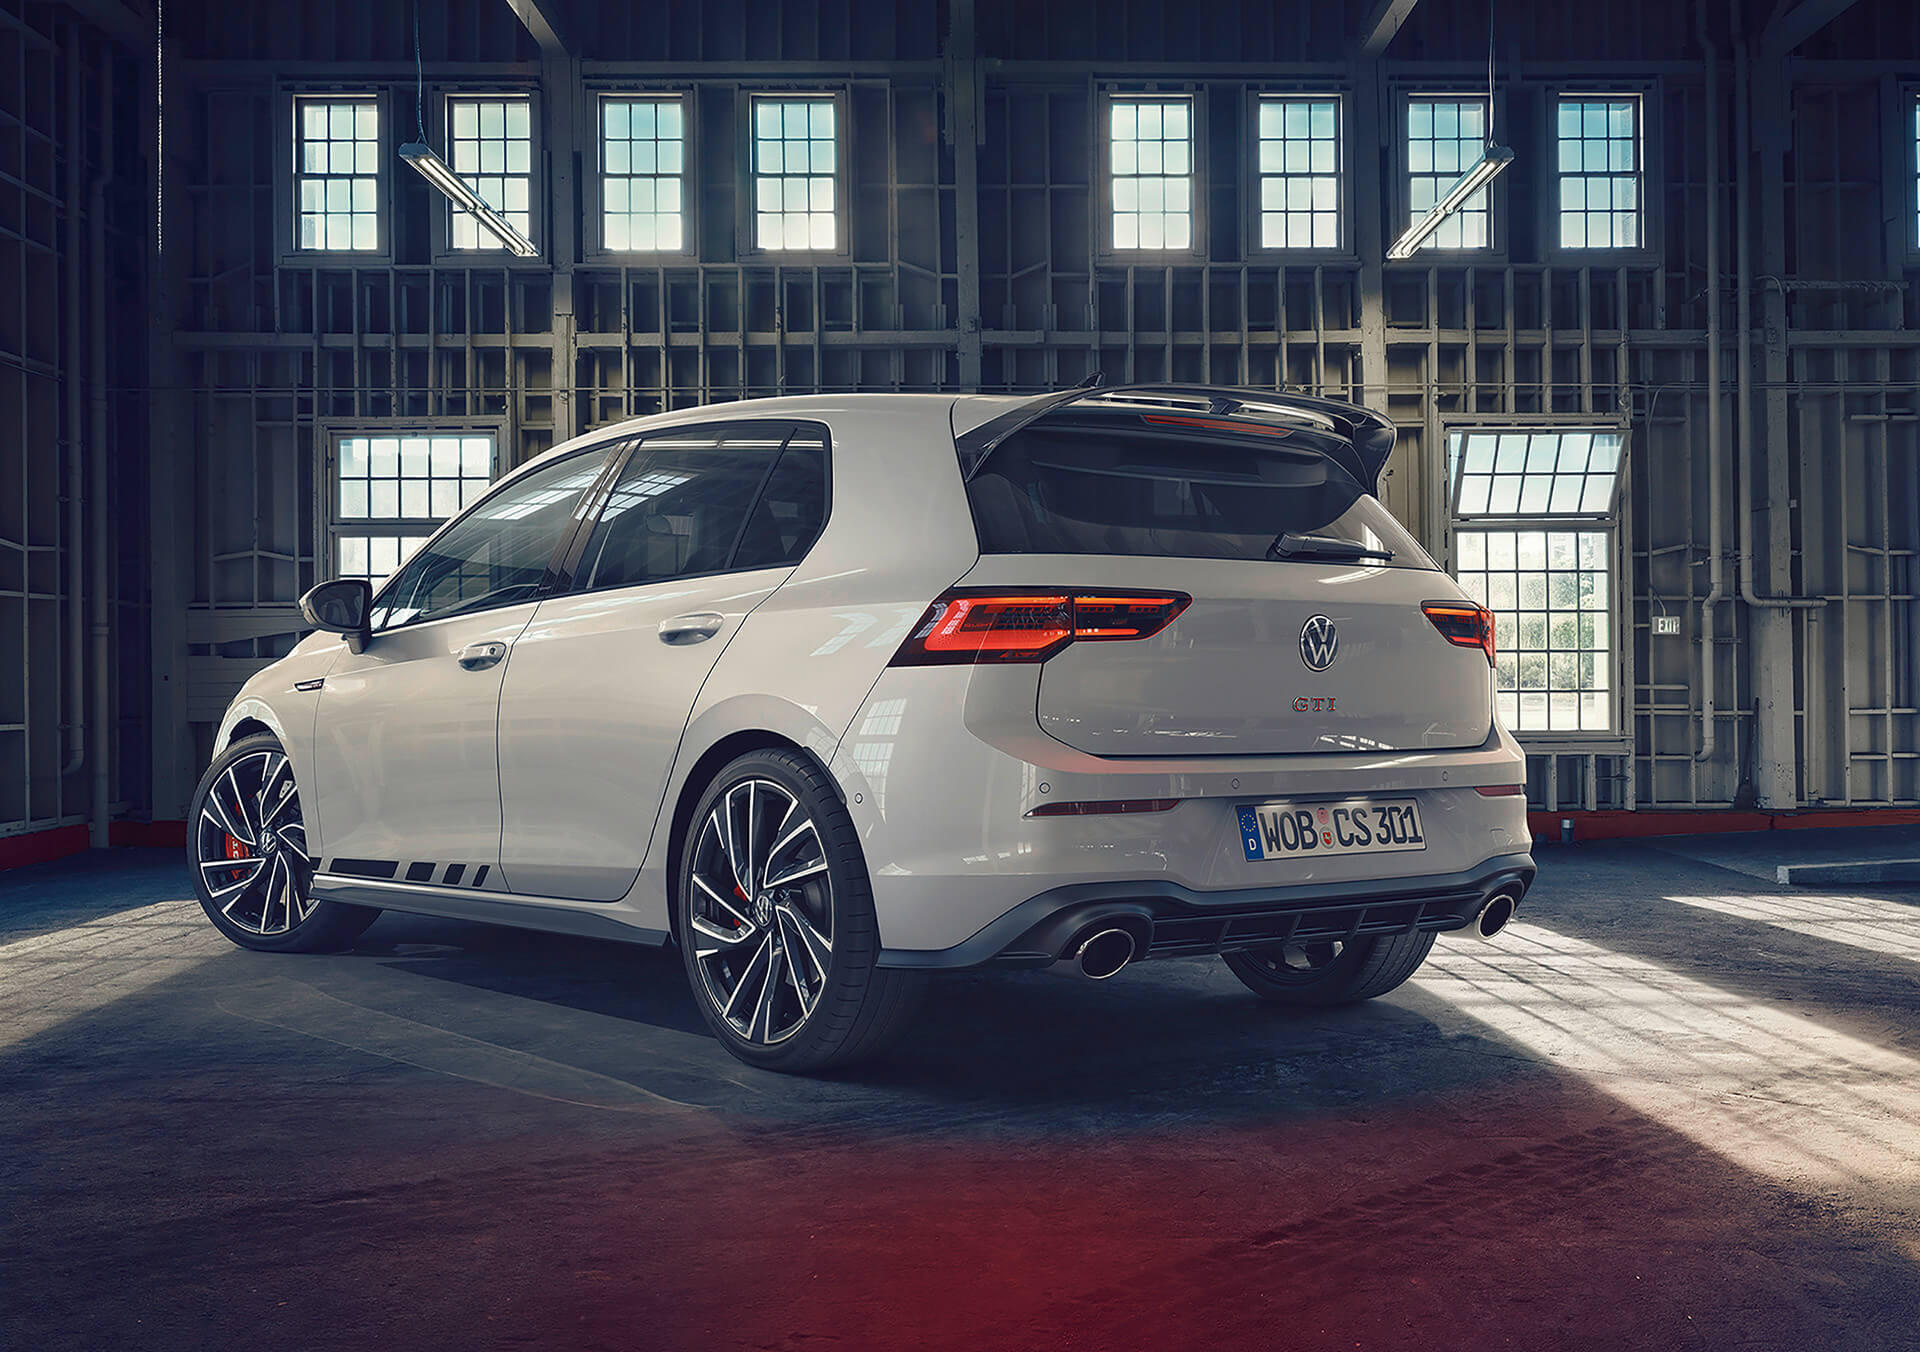 Νέο Volkswagen Golf GTI Clubsport - Πίσω όψη